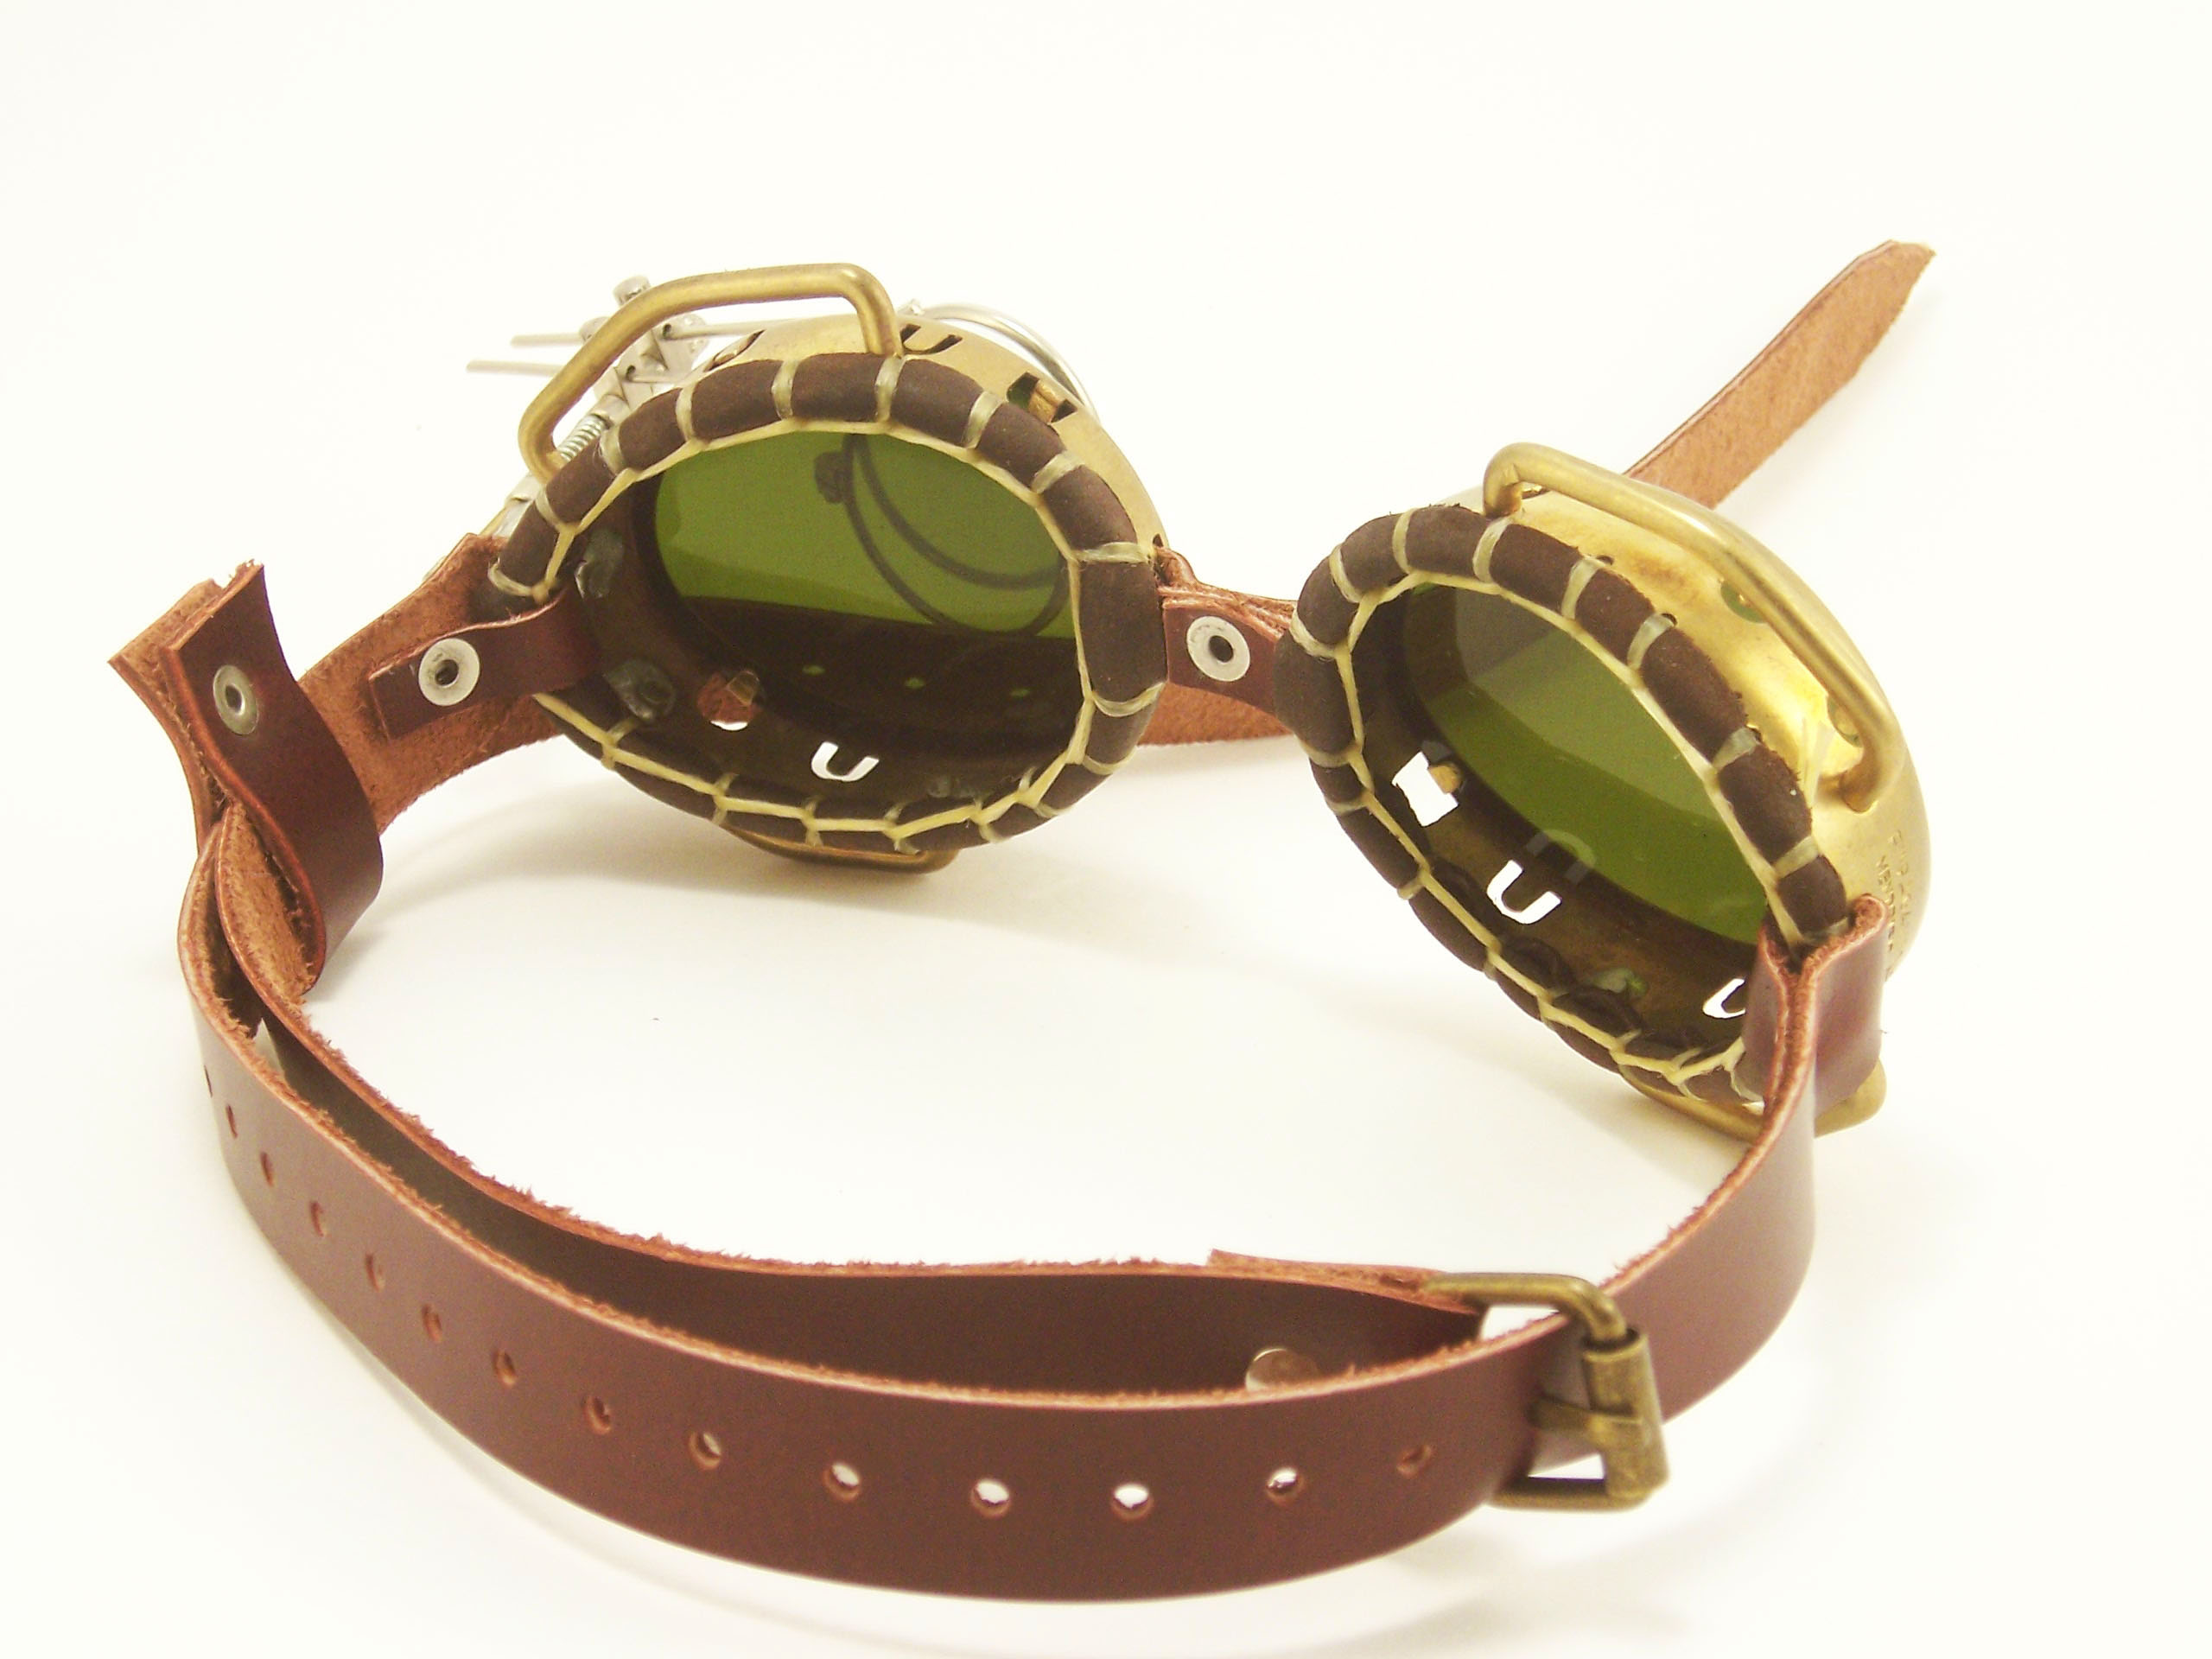 rebelsmarket_steampunk_goggles_solid_brass_with_flip_down_magnifiers_and_conduits_goggles_5.jpg